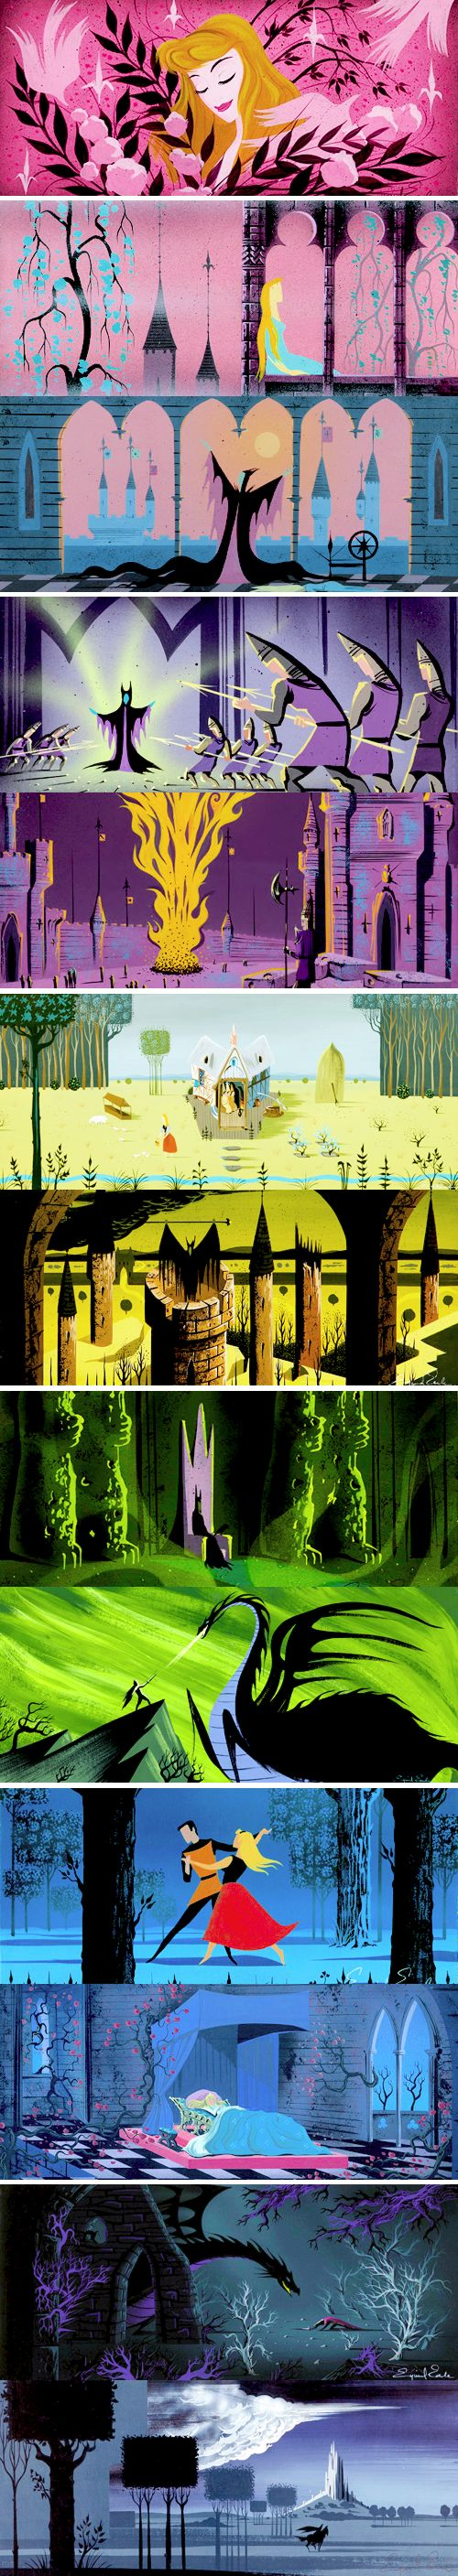 Concept art for Disney's Sleeping Beauty by Eyvind Earle